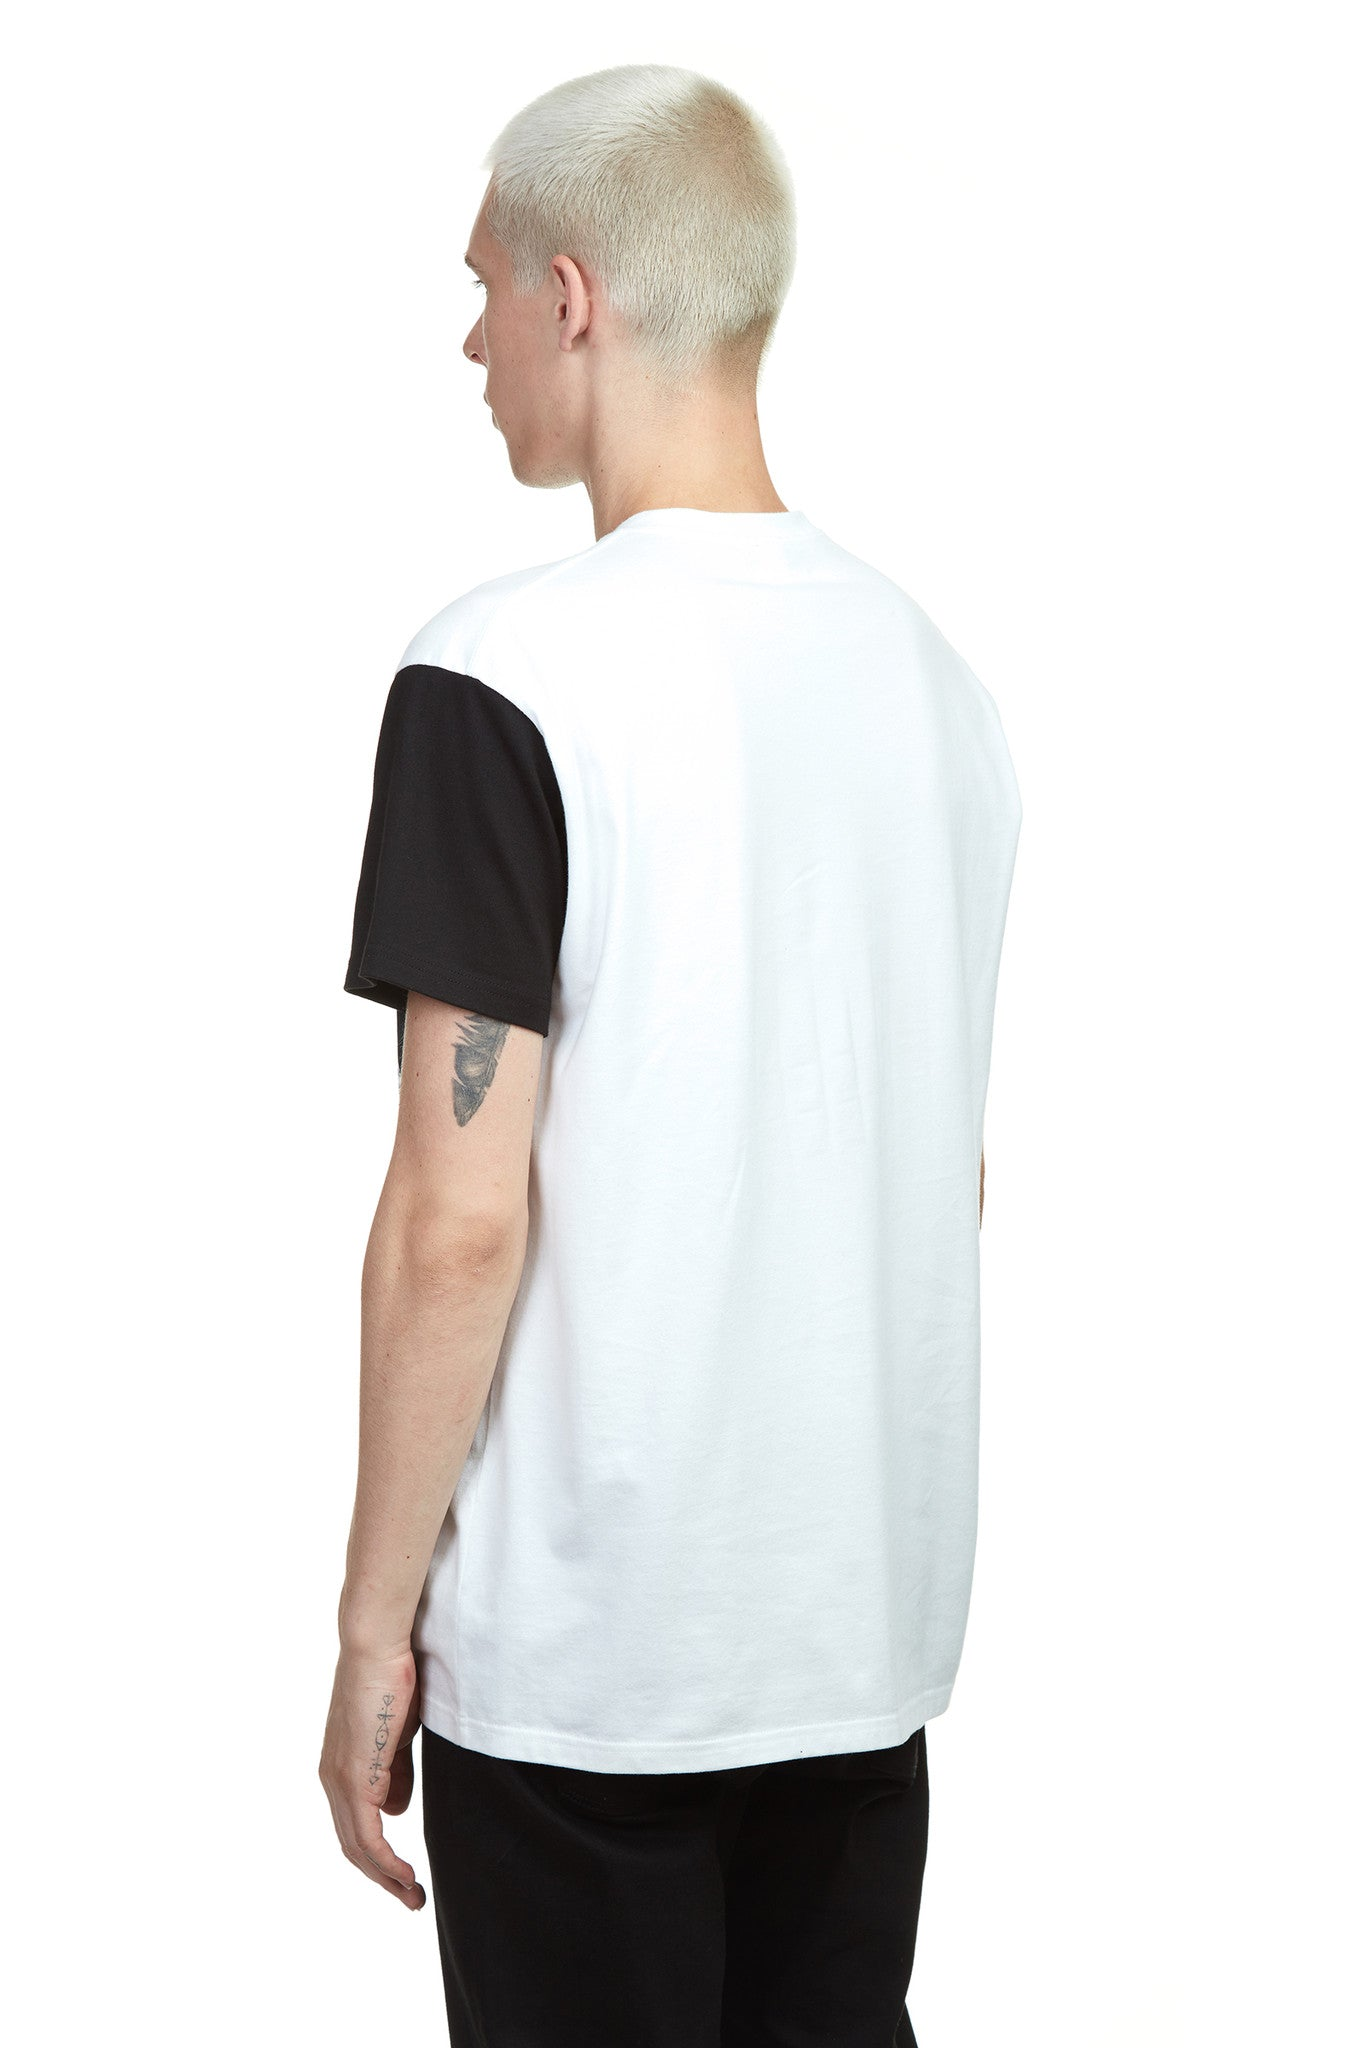 white t shirt with graphic art